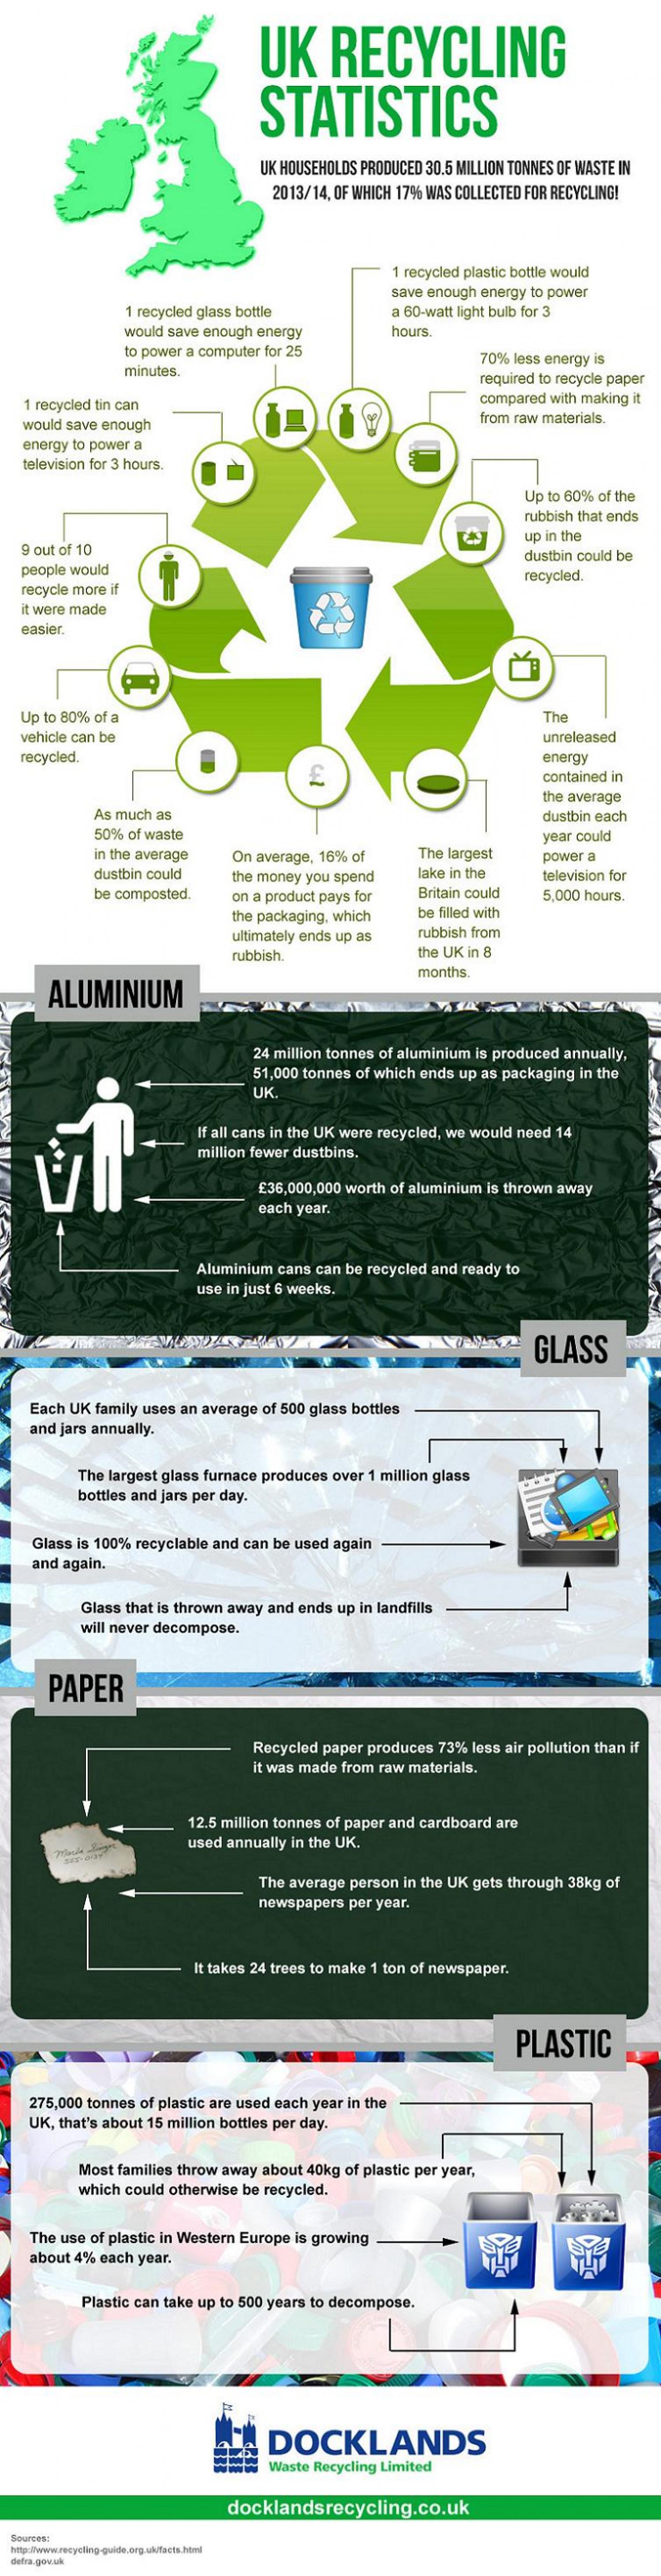 UK Recycling Statistics Infographic